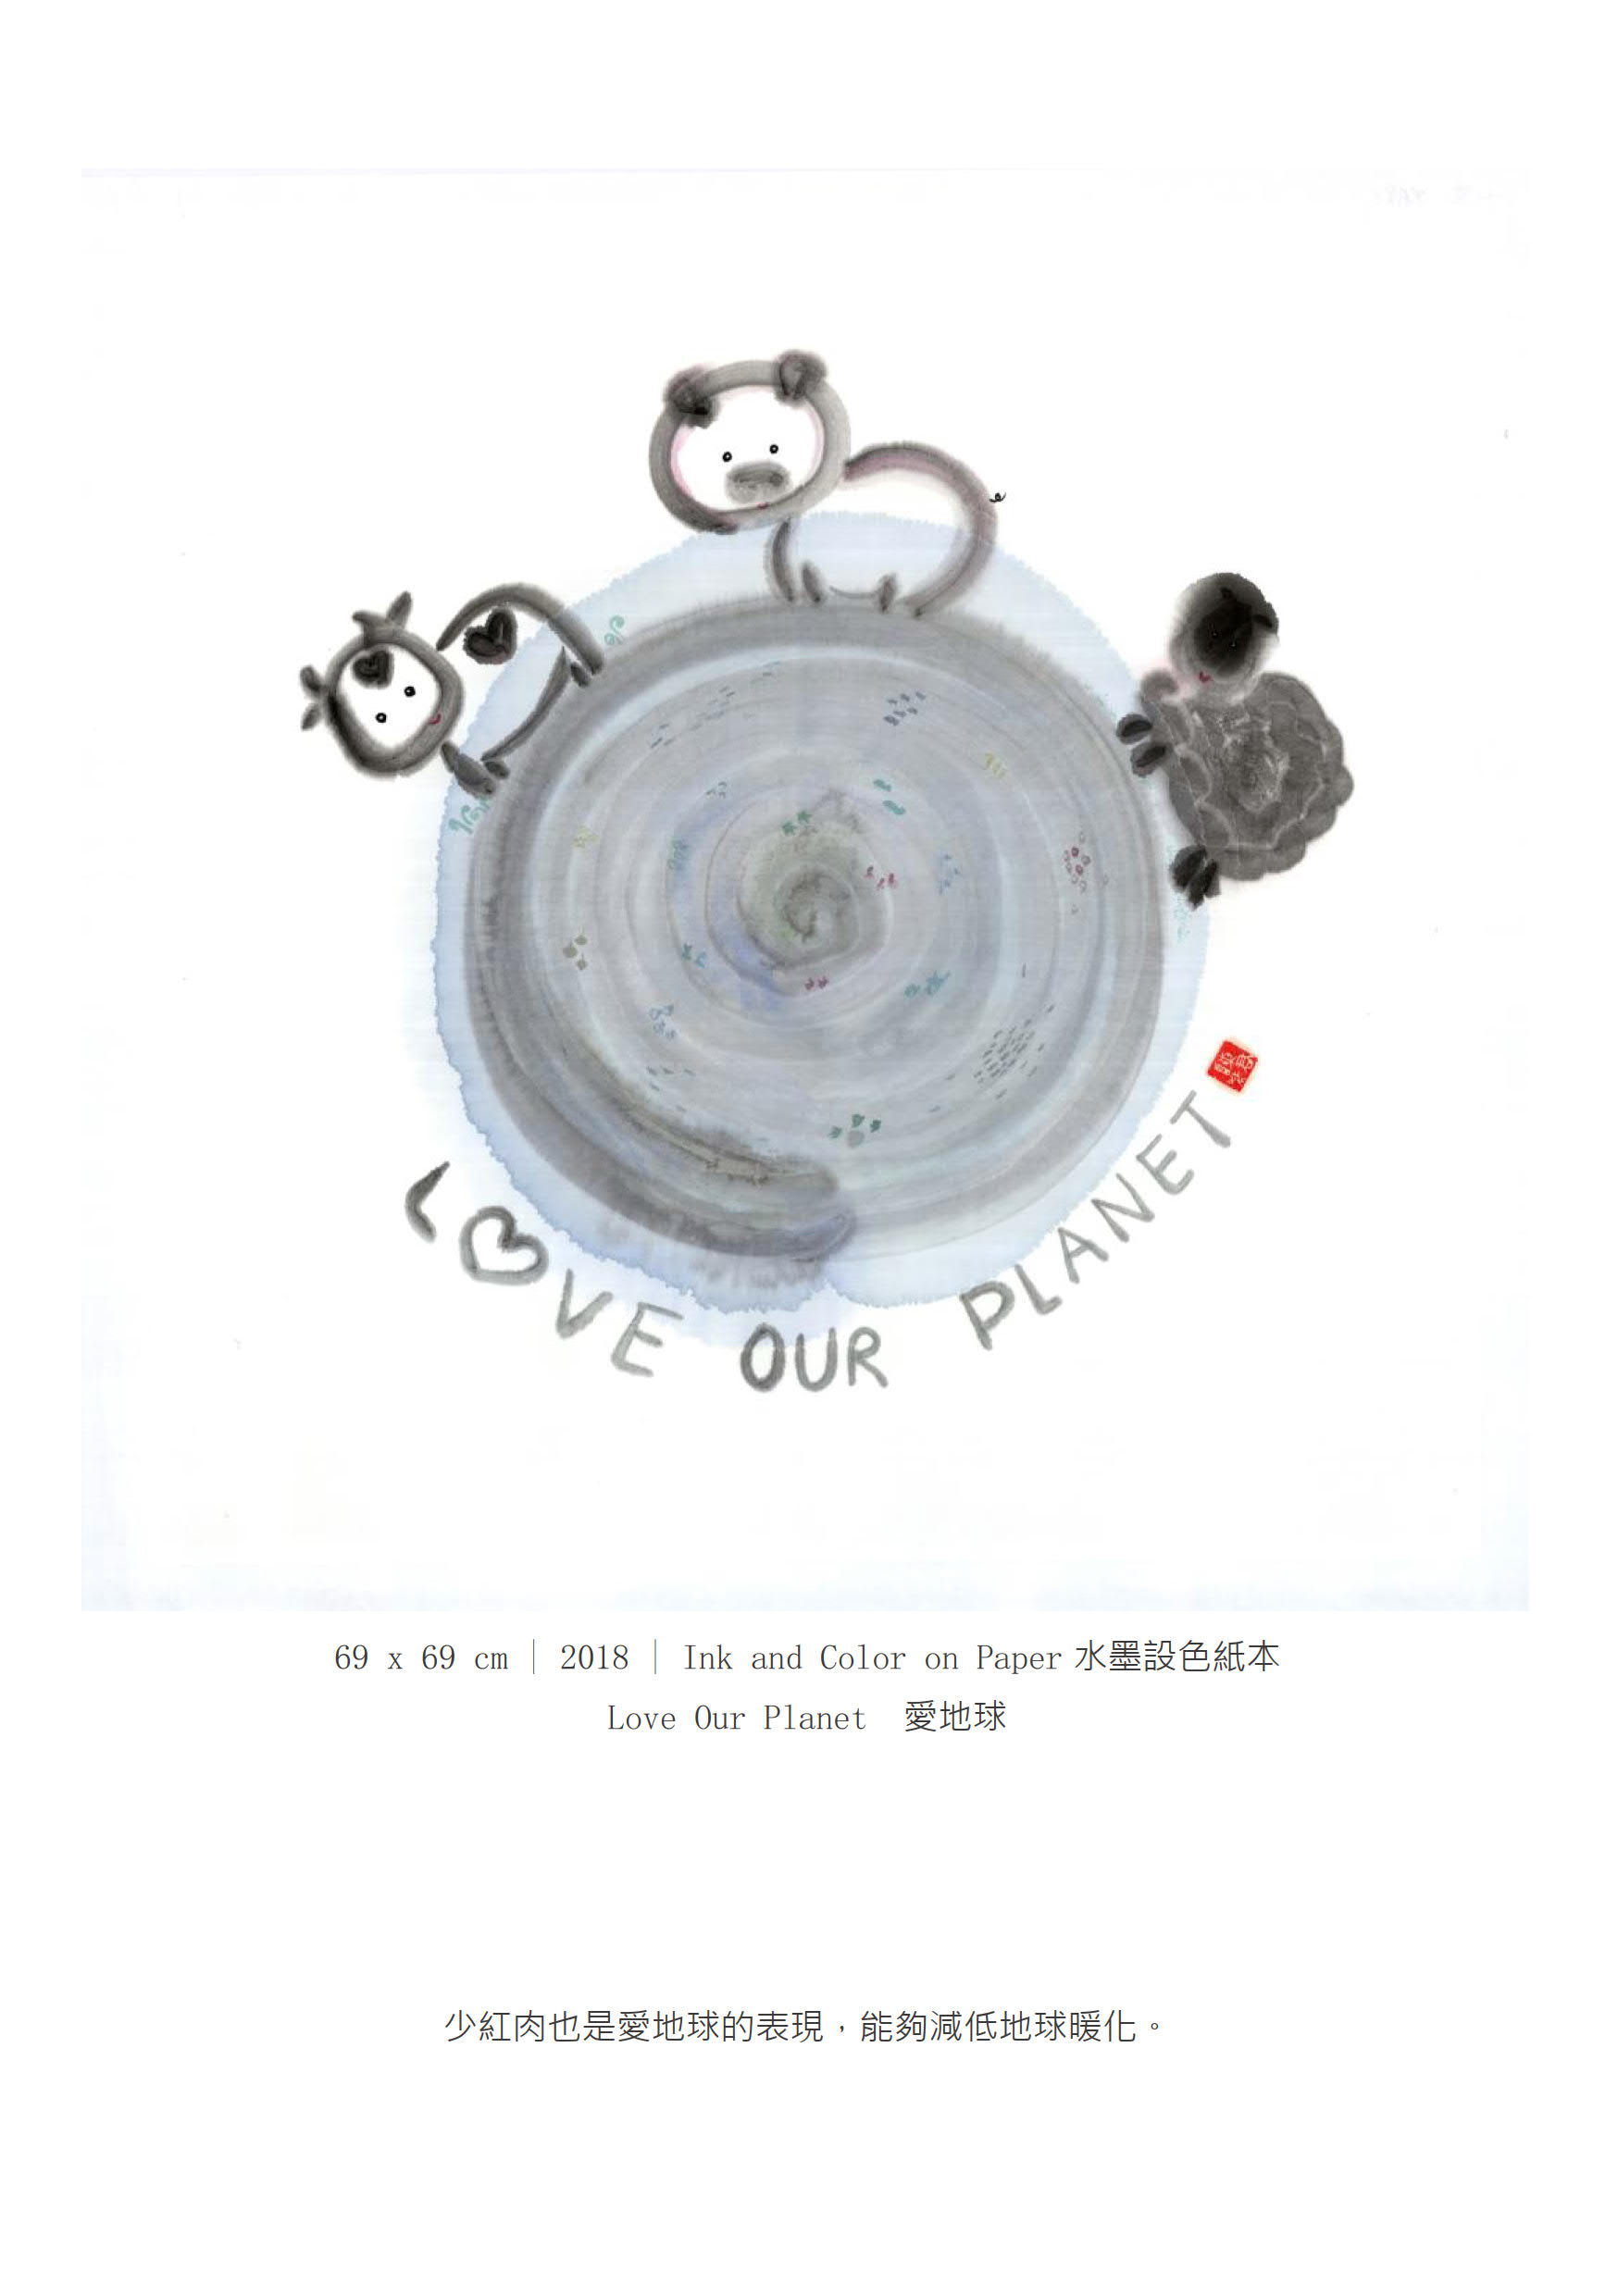 Love Our Planet  愛地球